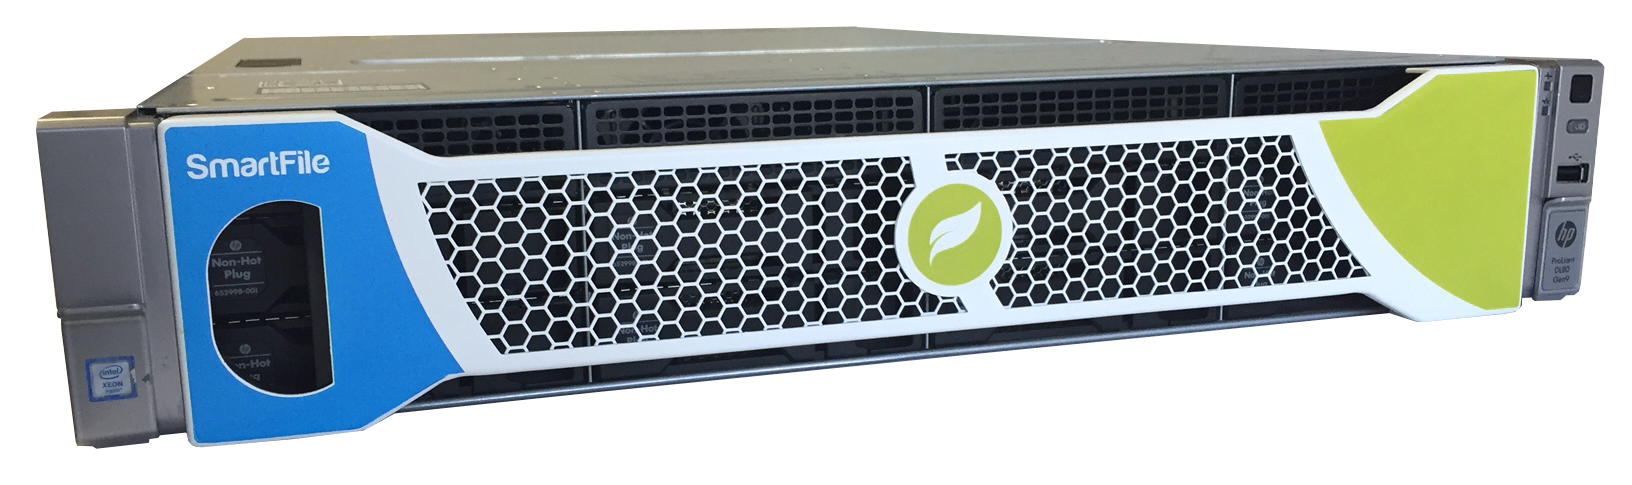 what is hybrid cloud storage private cloud?